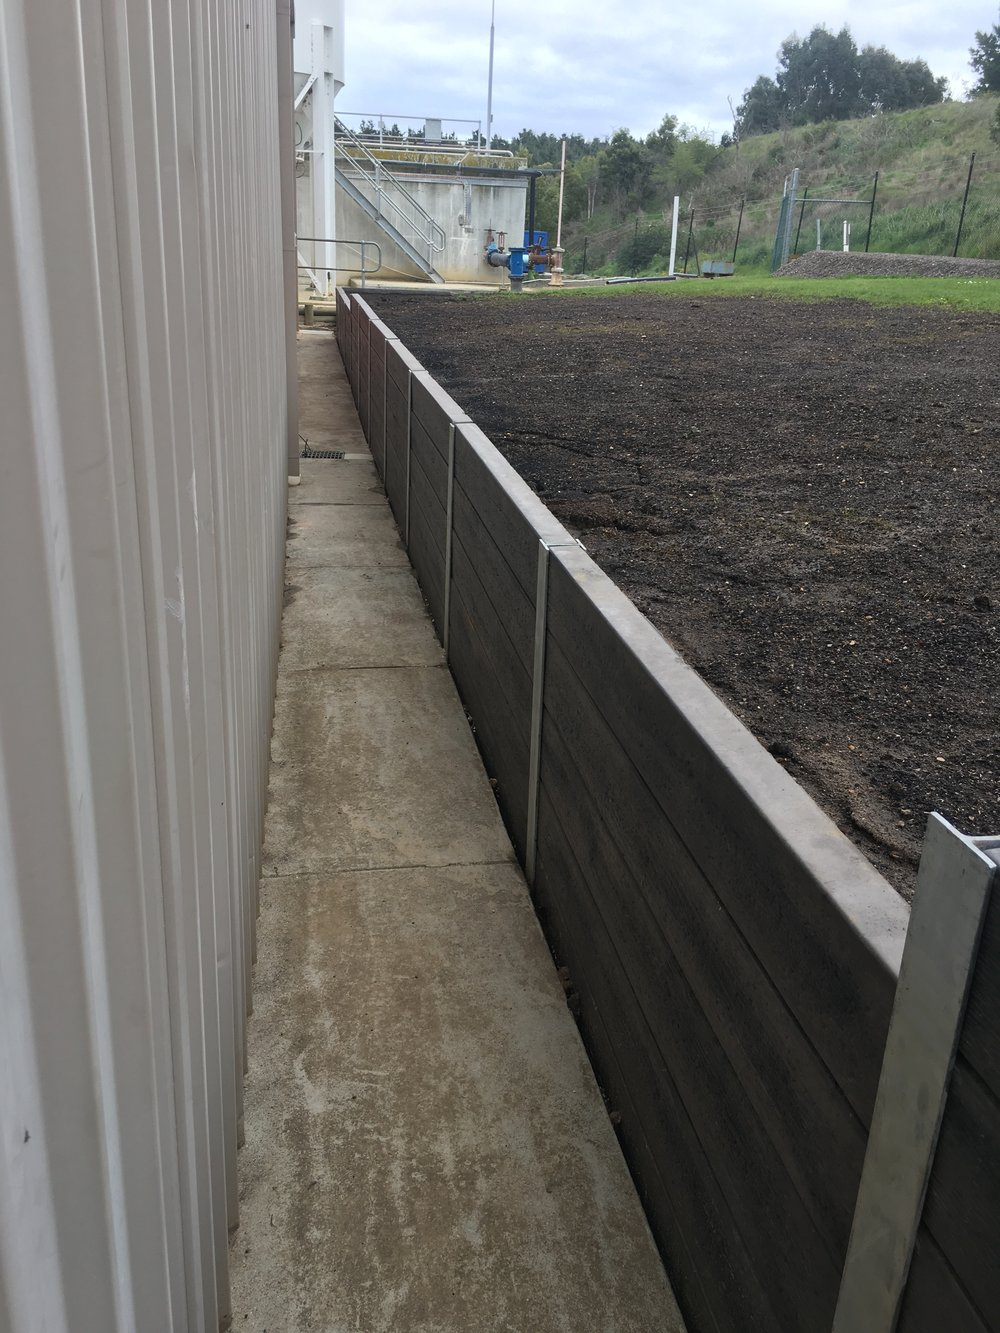 Woodgrain-look concrete sleeper retaining wall with steel posts